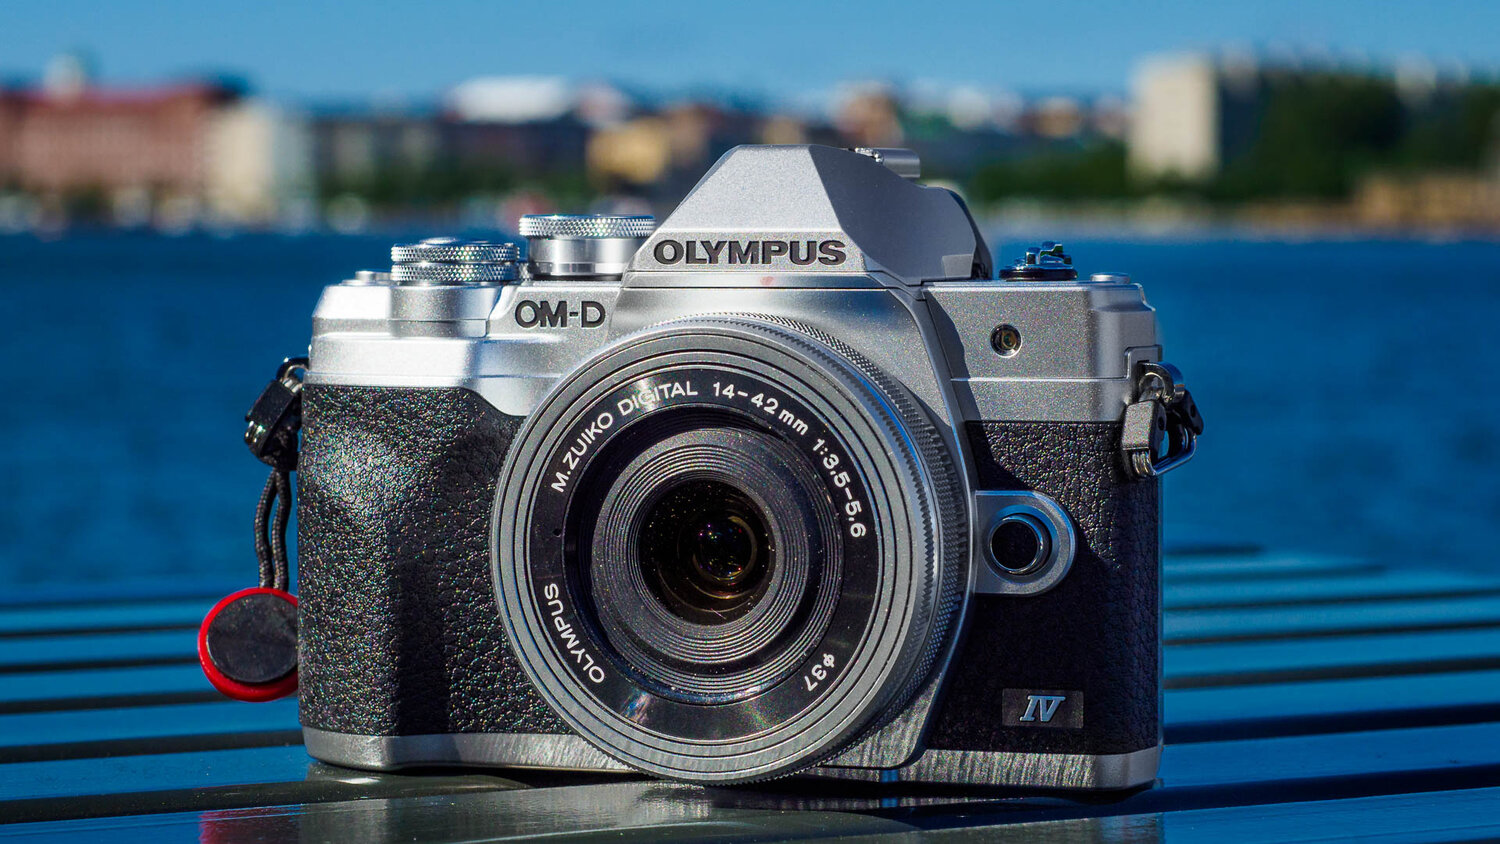 Two new products from Olympus: E-M10 MKIV and 100-400mm zoom lens.